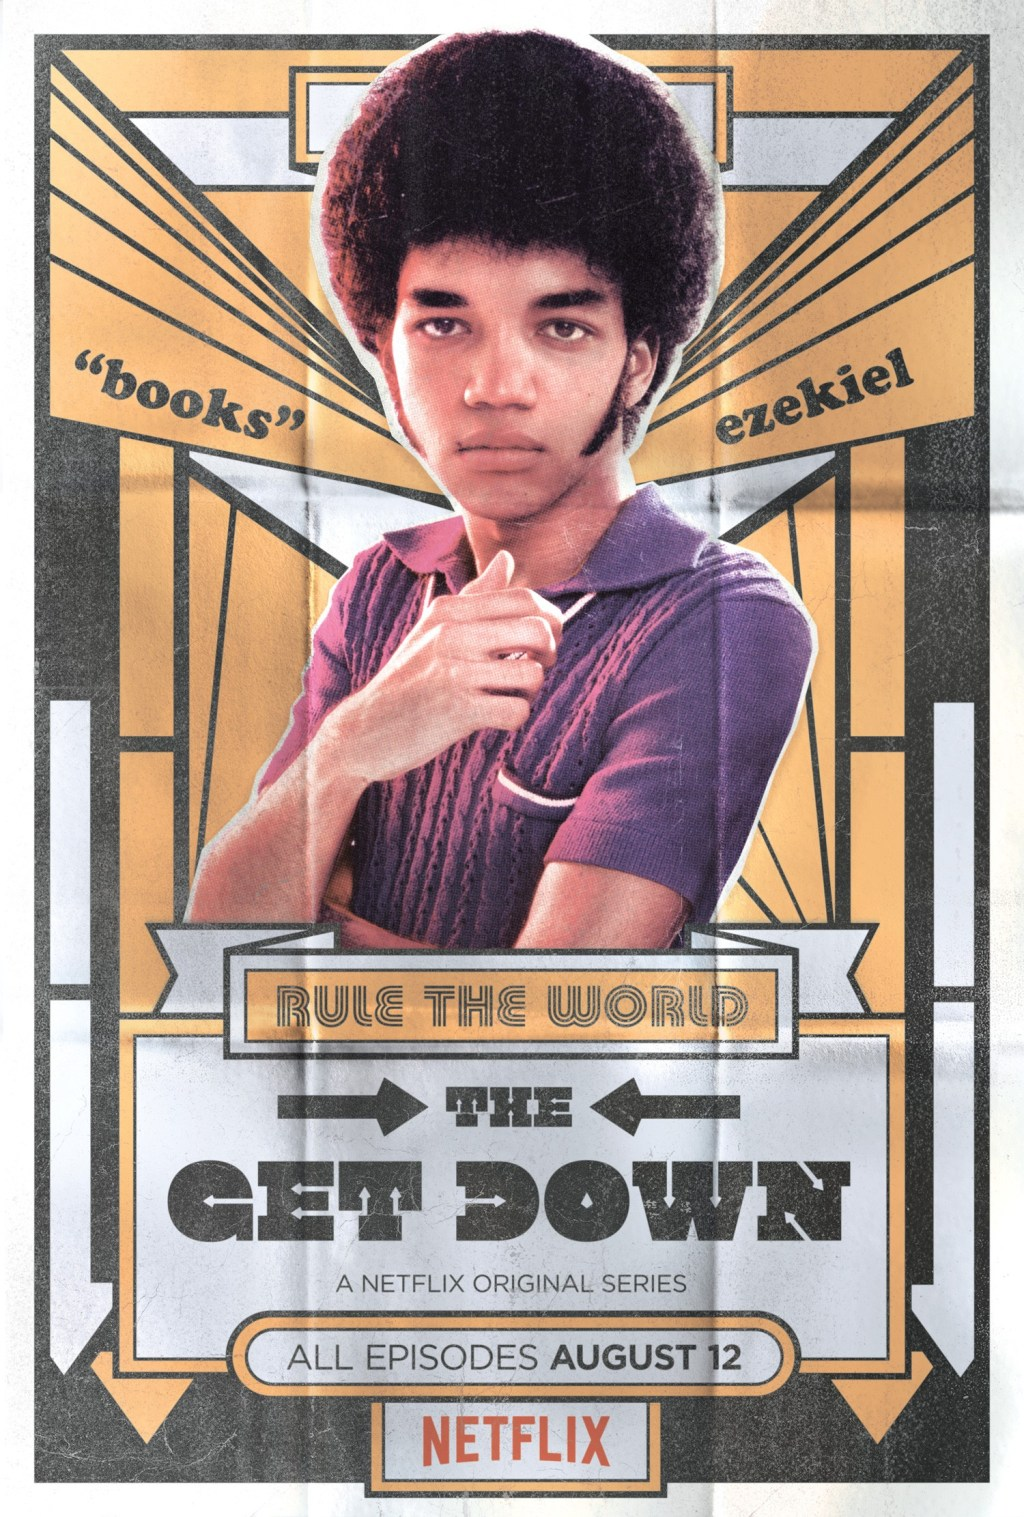 Justice Smith as Ezekiel in The Get Down. Netflix